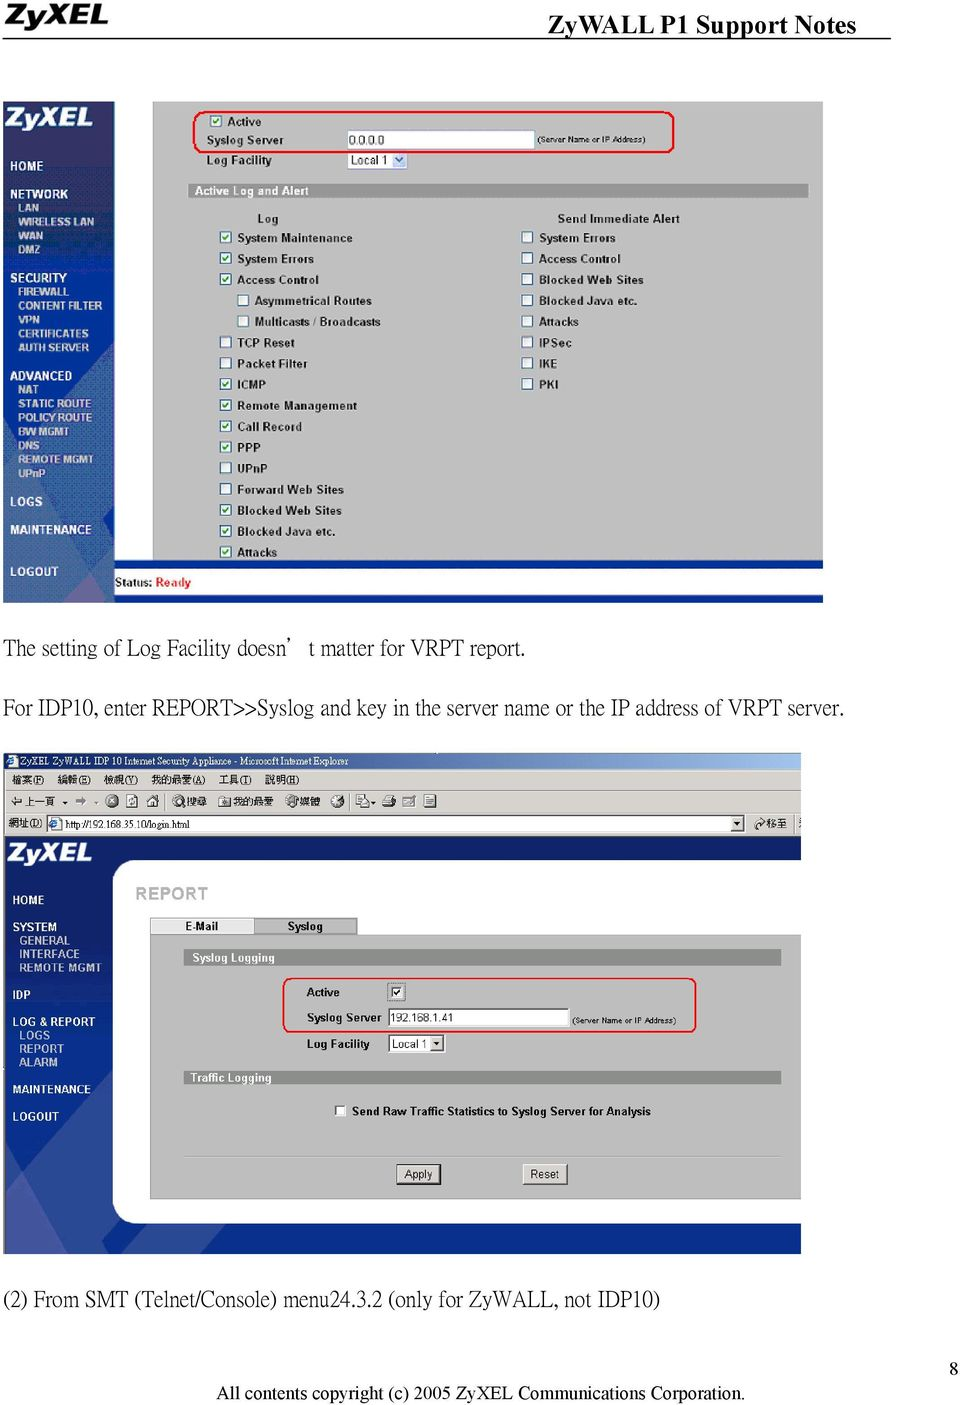 For IDP10, enter REPORT>>Syslog and key in the server